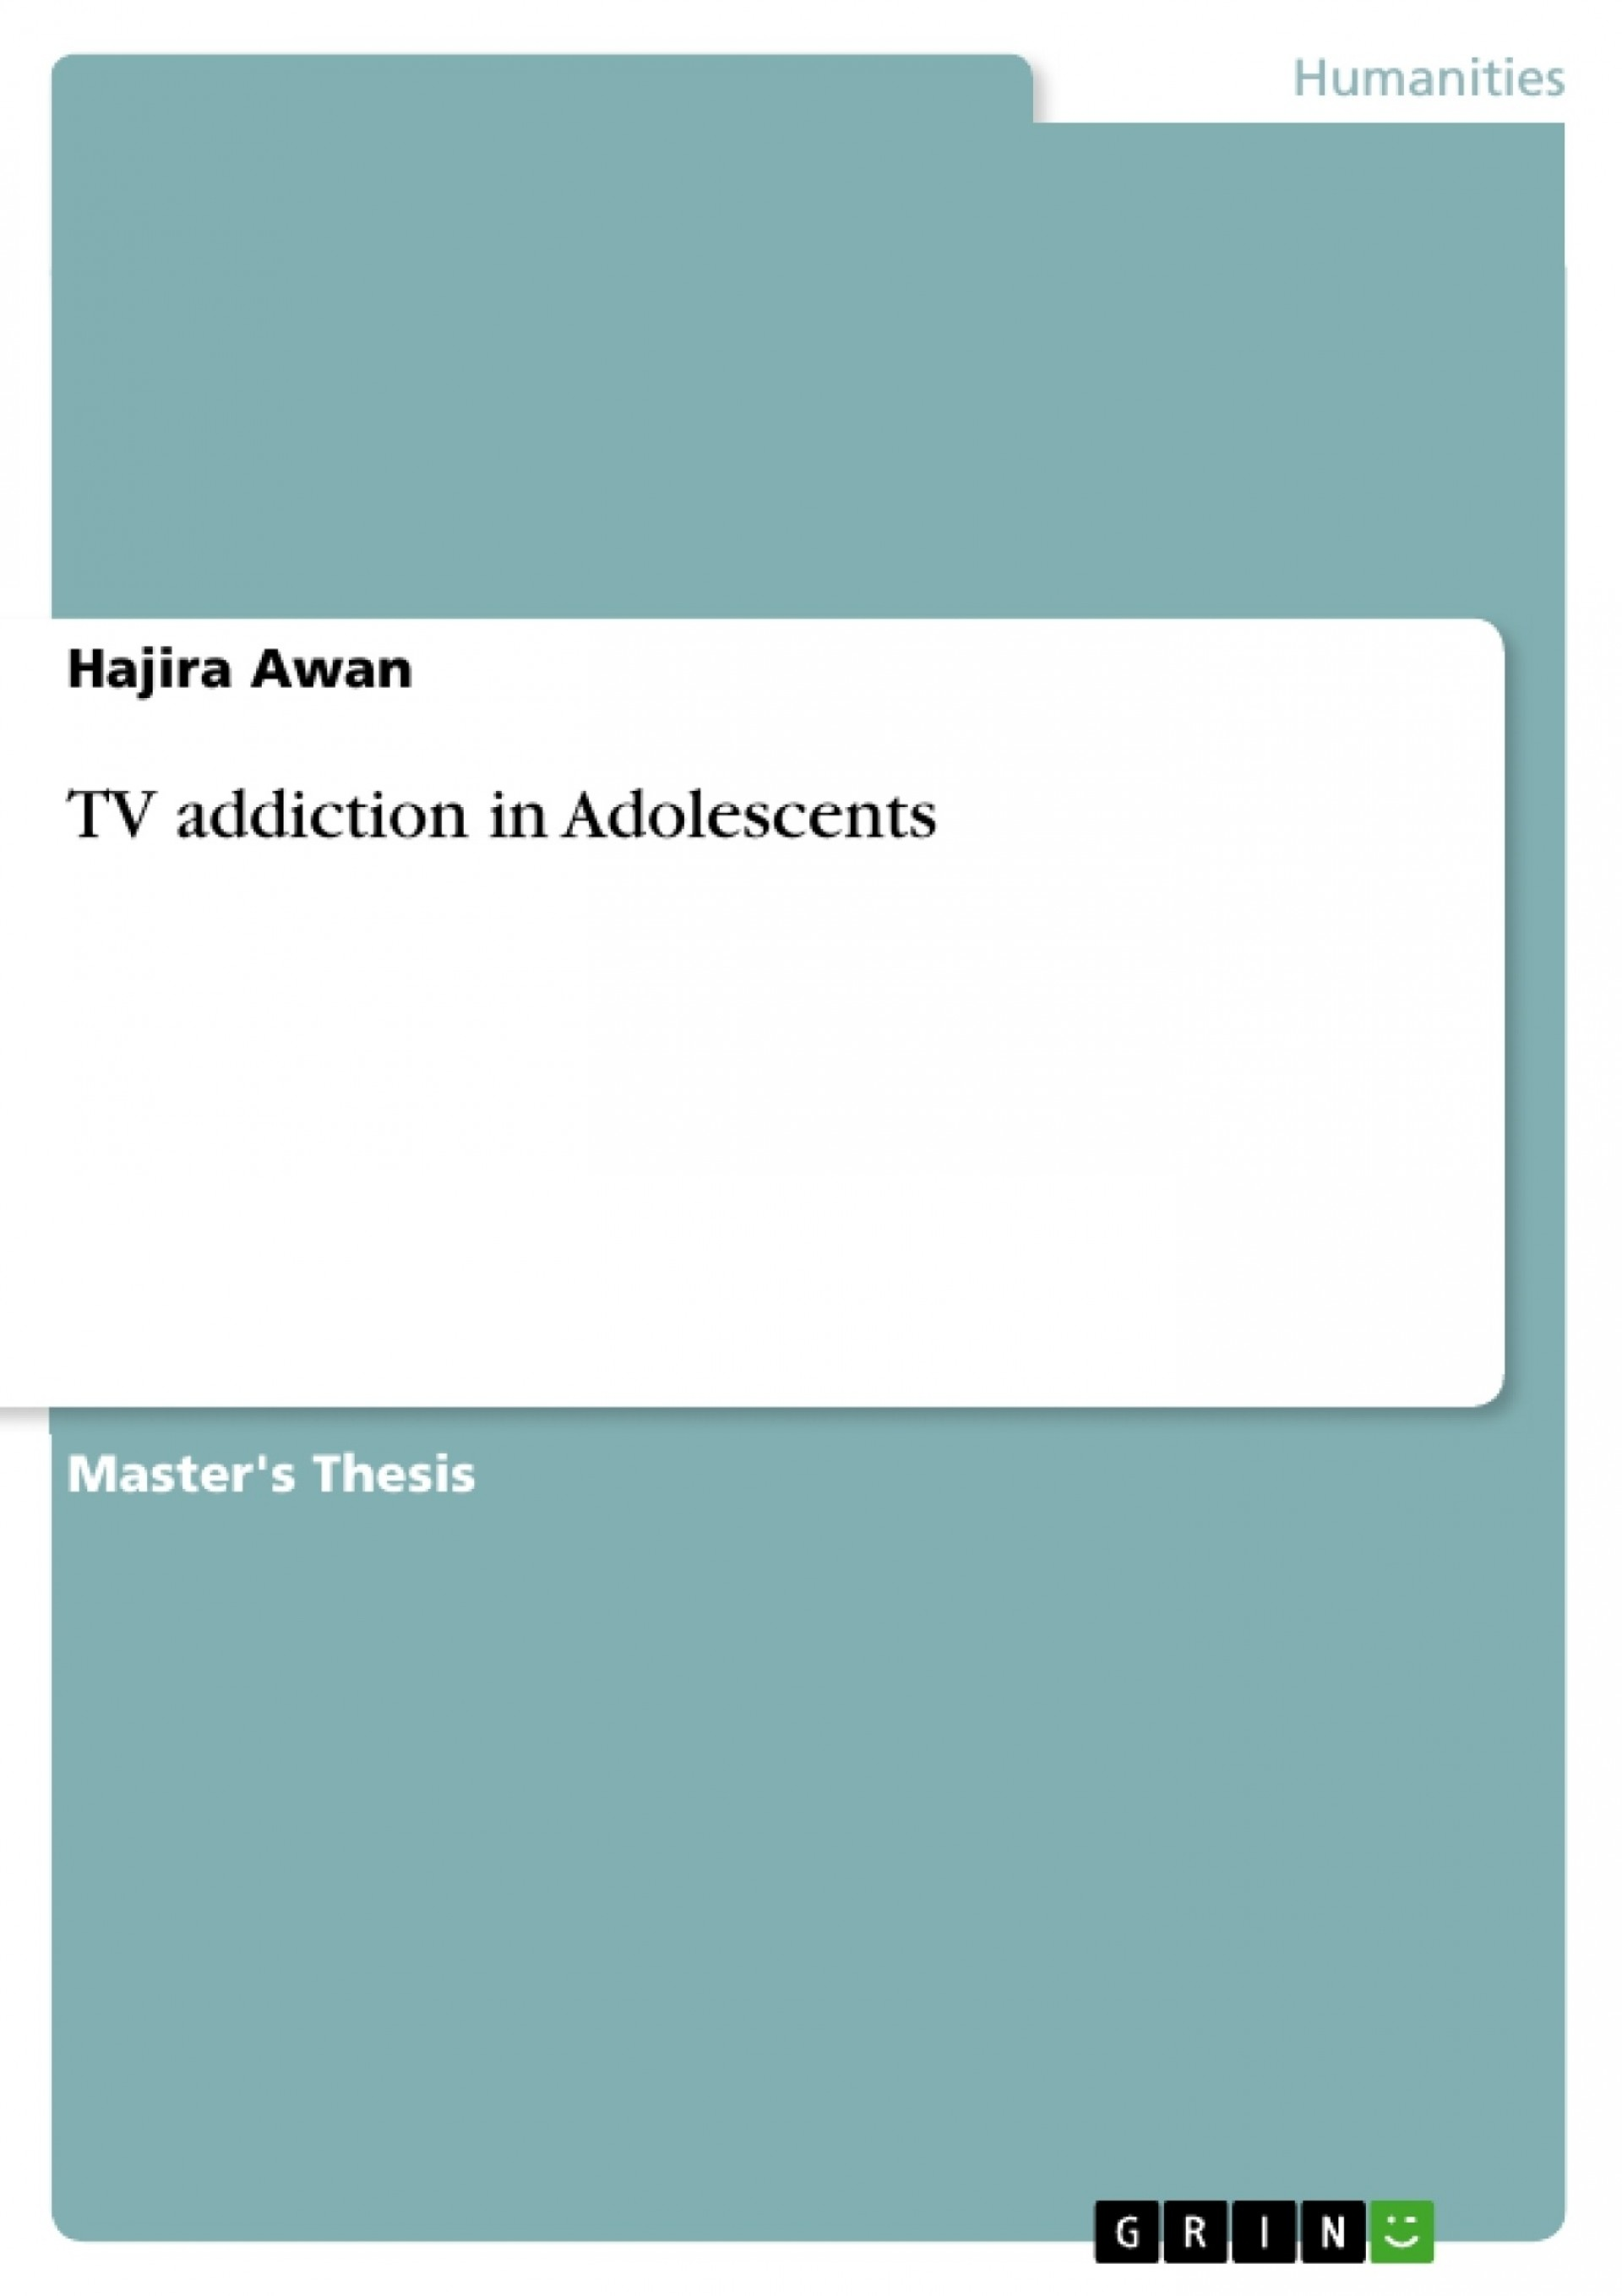 004 Essay Example Tv Addiction For Bsc 286671 0 Beautiful 1920